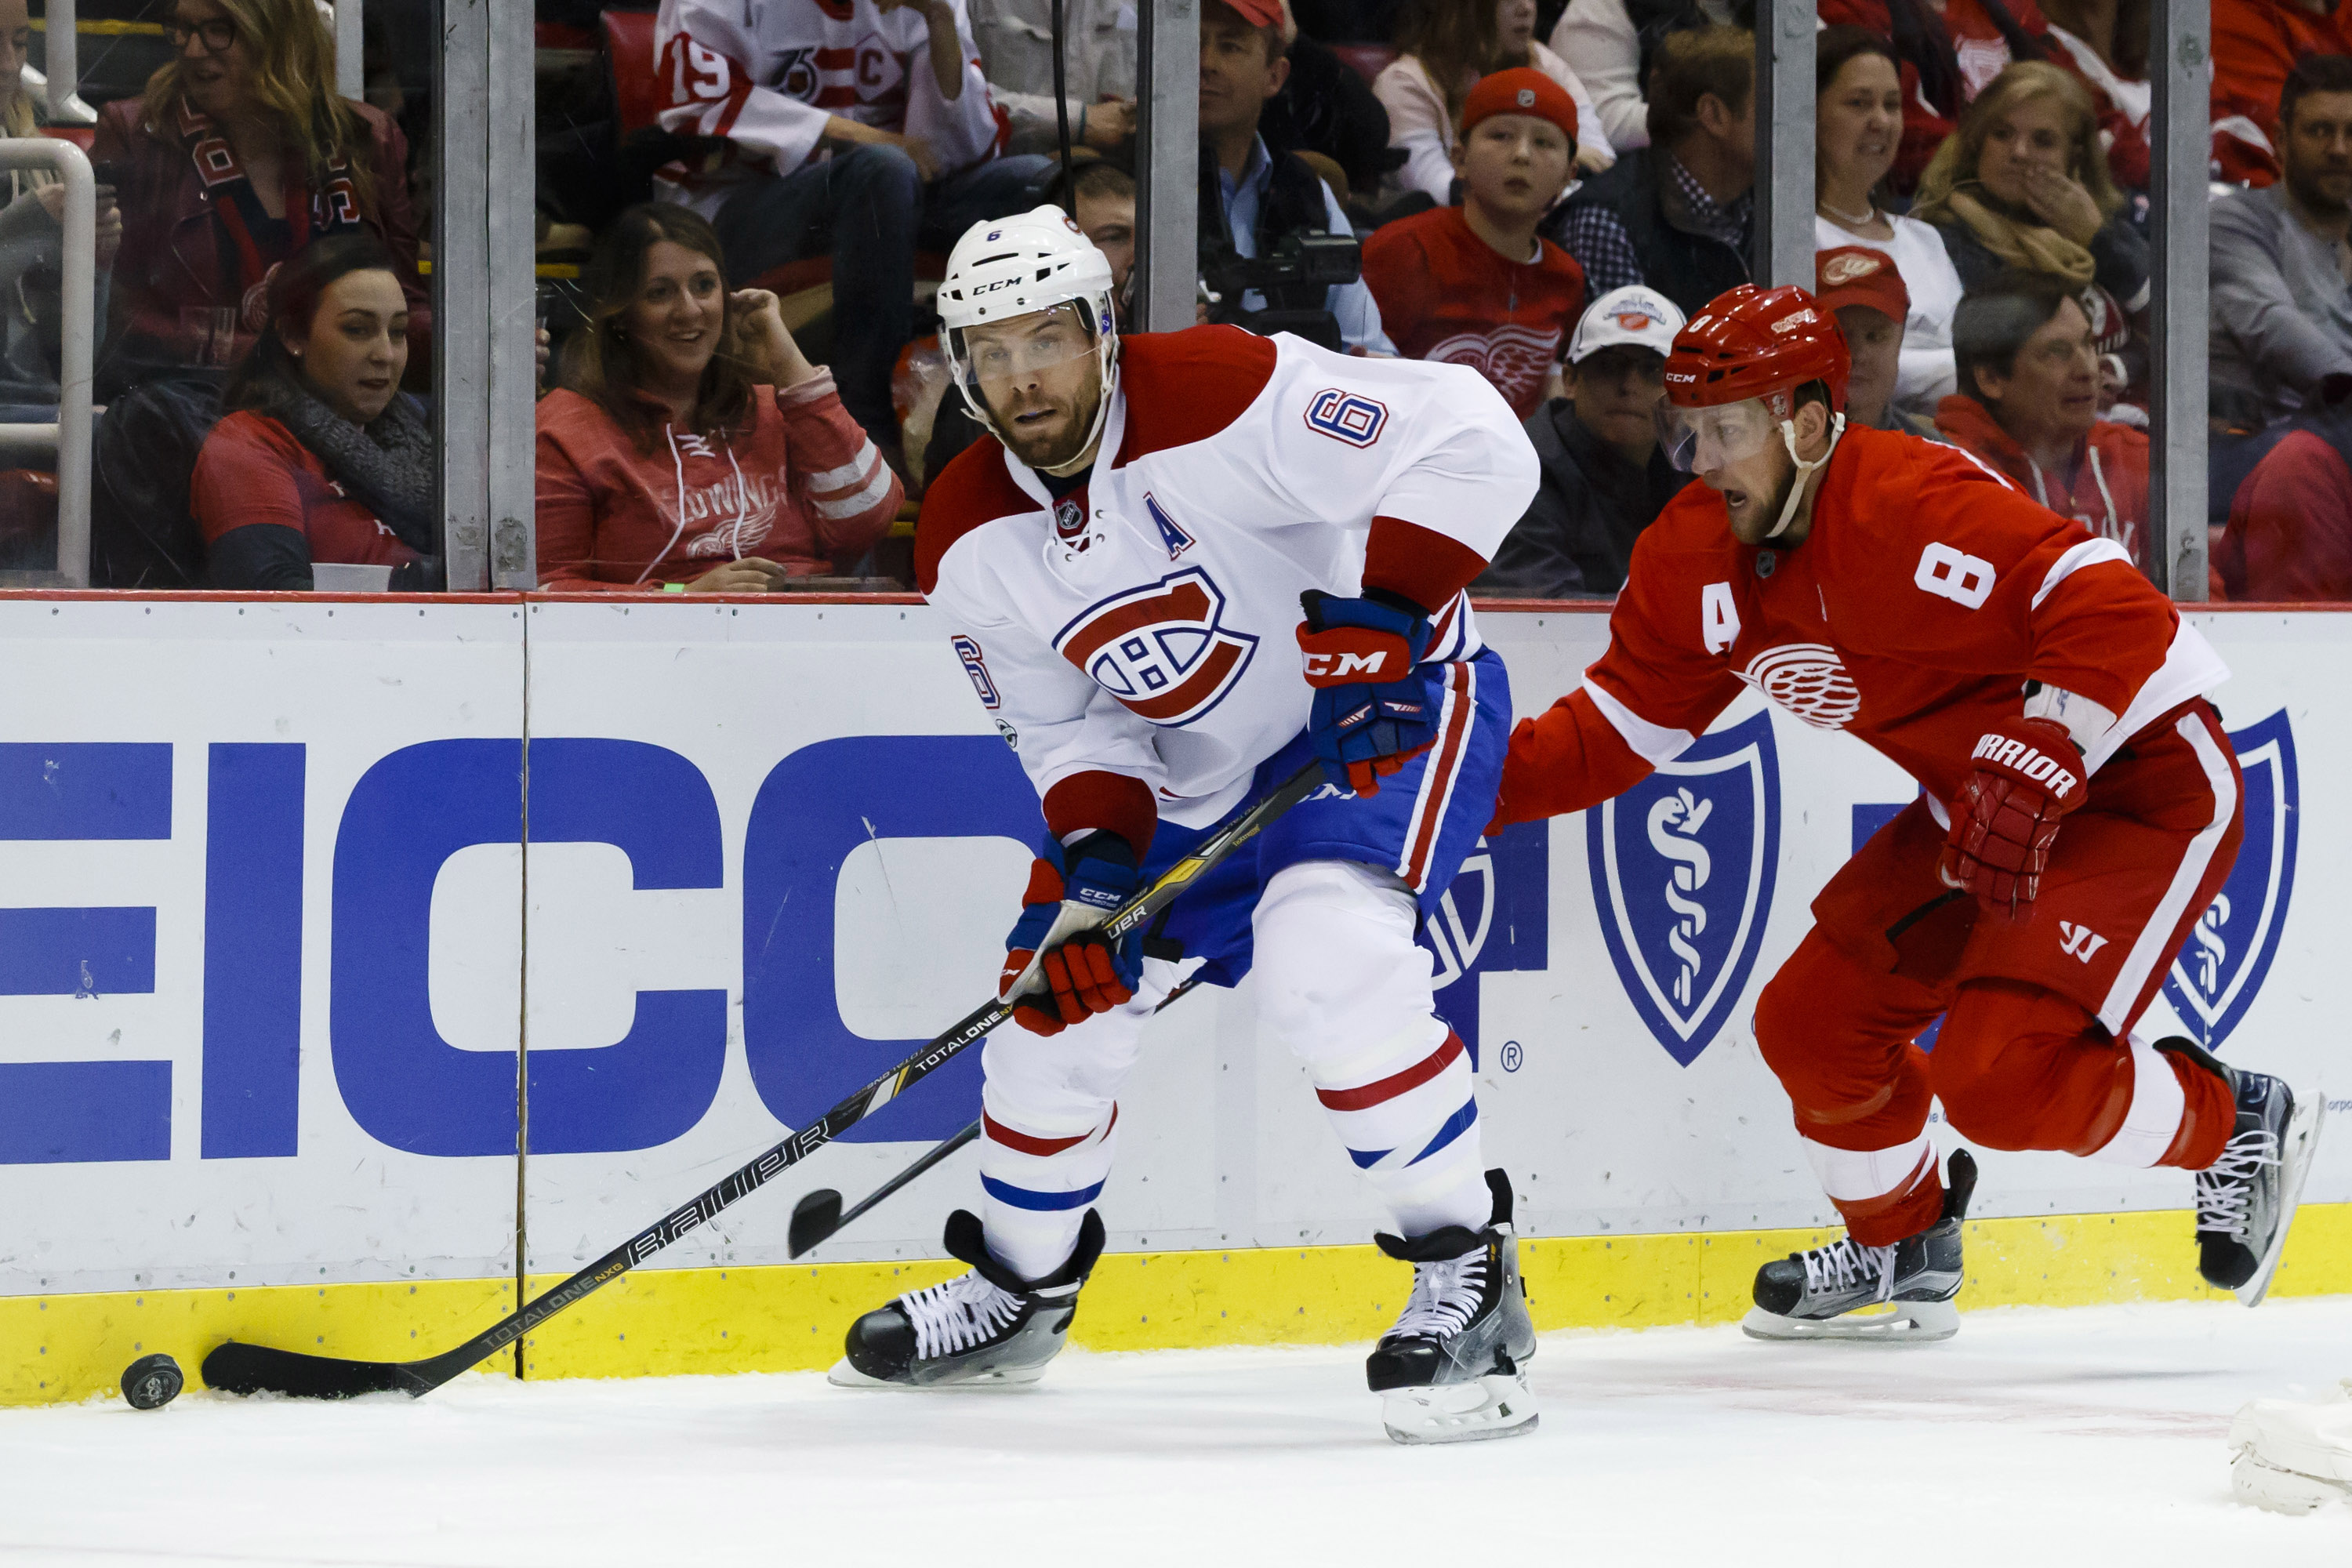 9813916-nhl-montreal-canadiens-at-detroit-red-wings